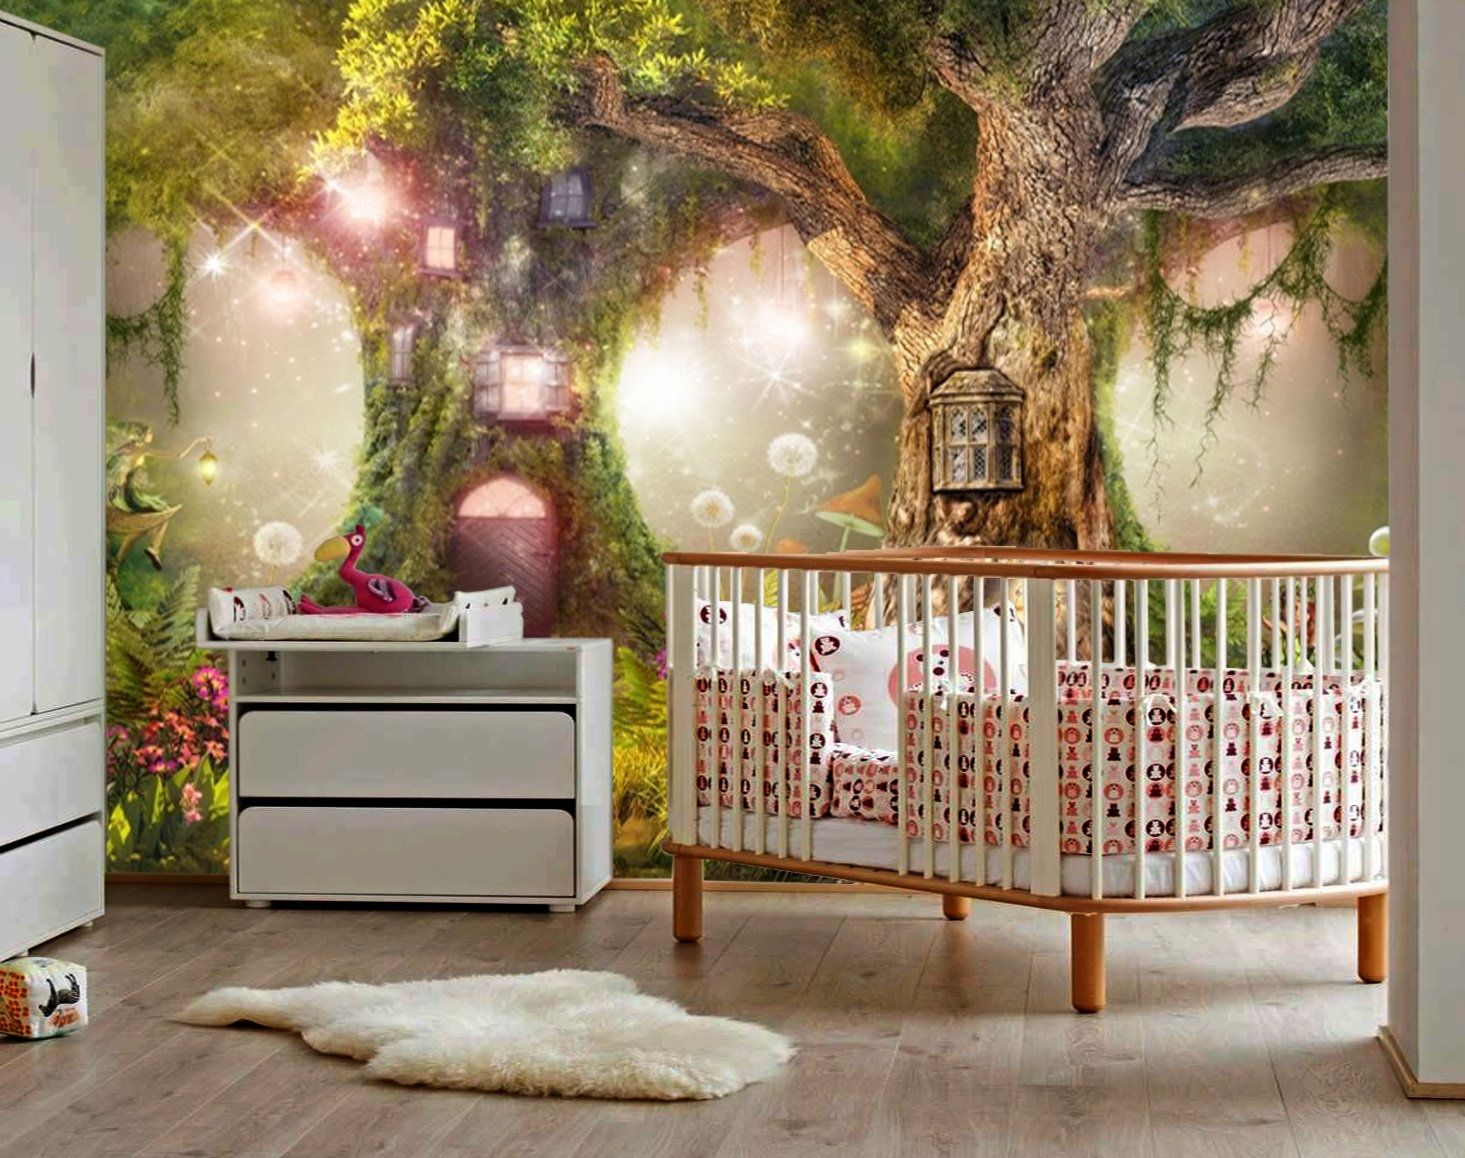 All woodland nursery designs also available on gift wrap and wallpaper. Wallpapermagical Forest Nurserymagic Treefairy Etsy In 2021 Forest Baby Rooms Girl Forest Room Enchanted Forest Nursery Theme